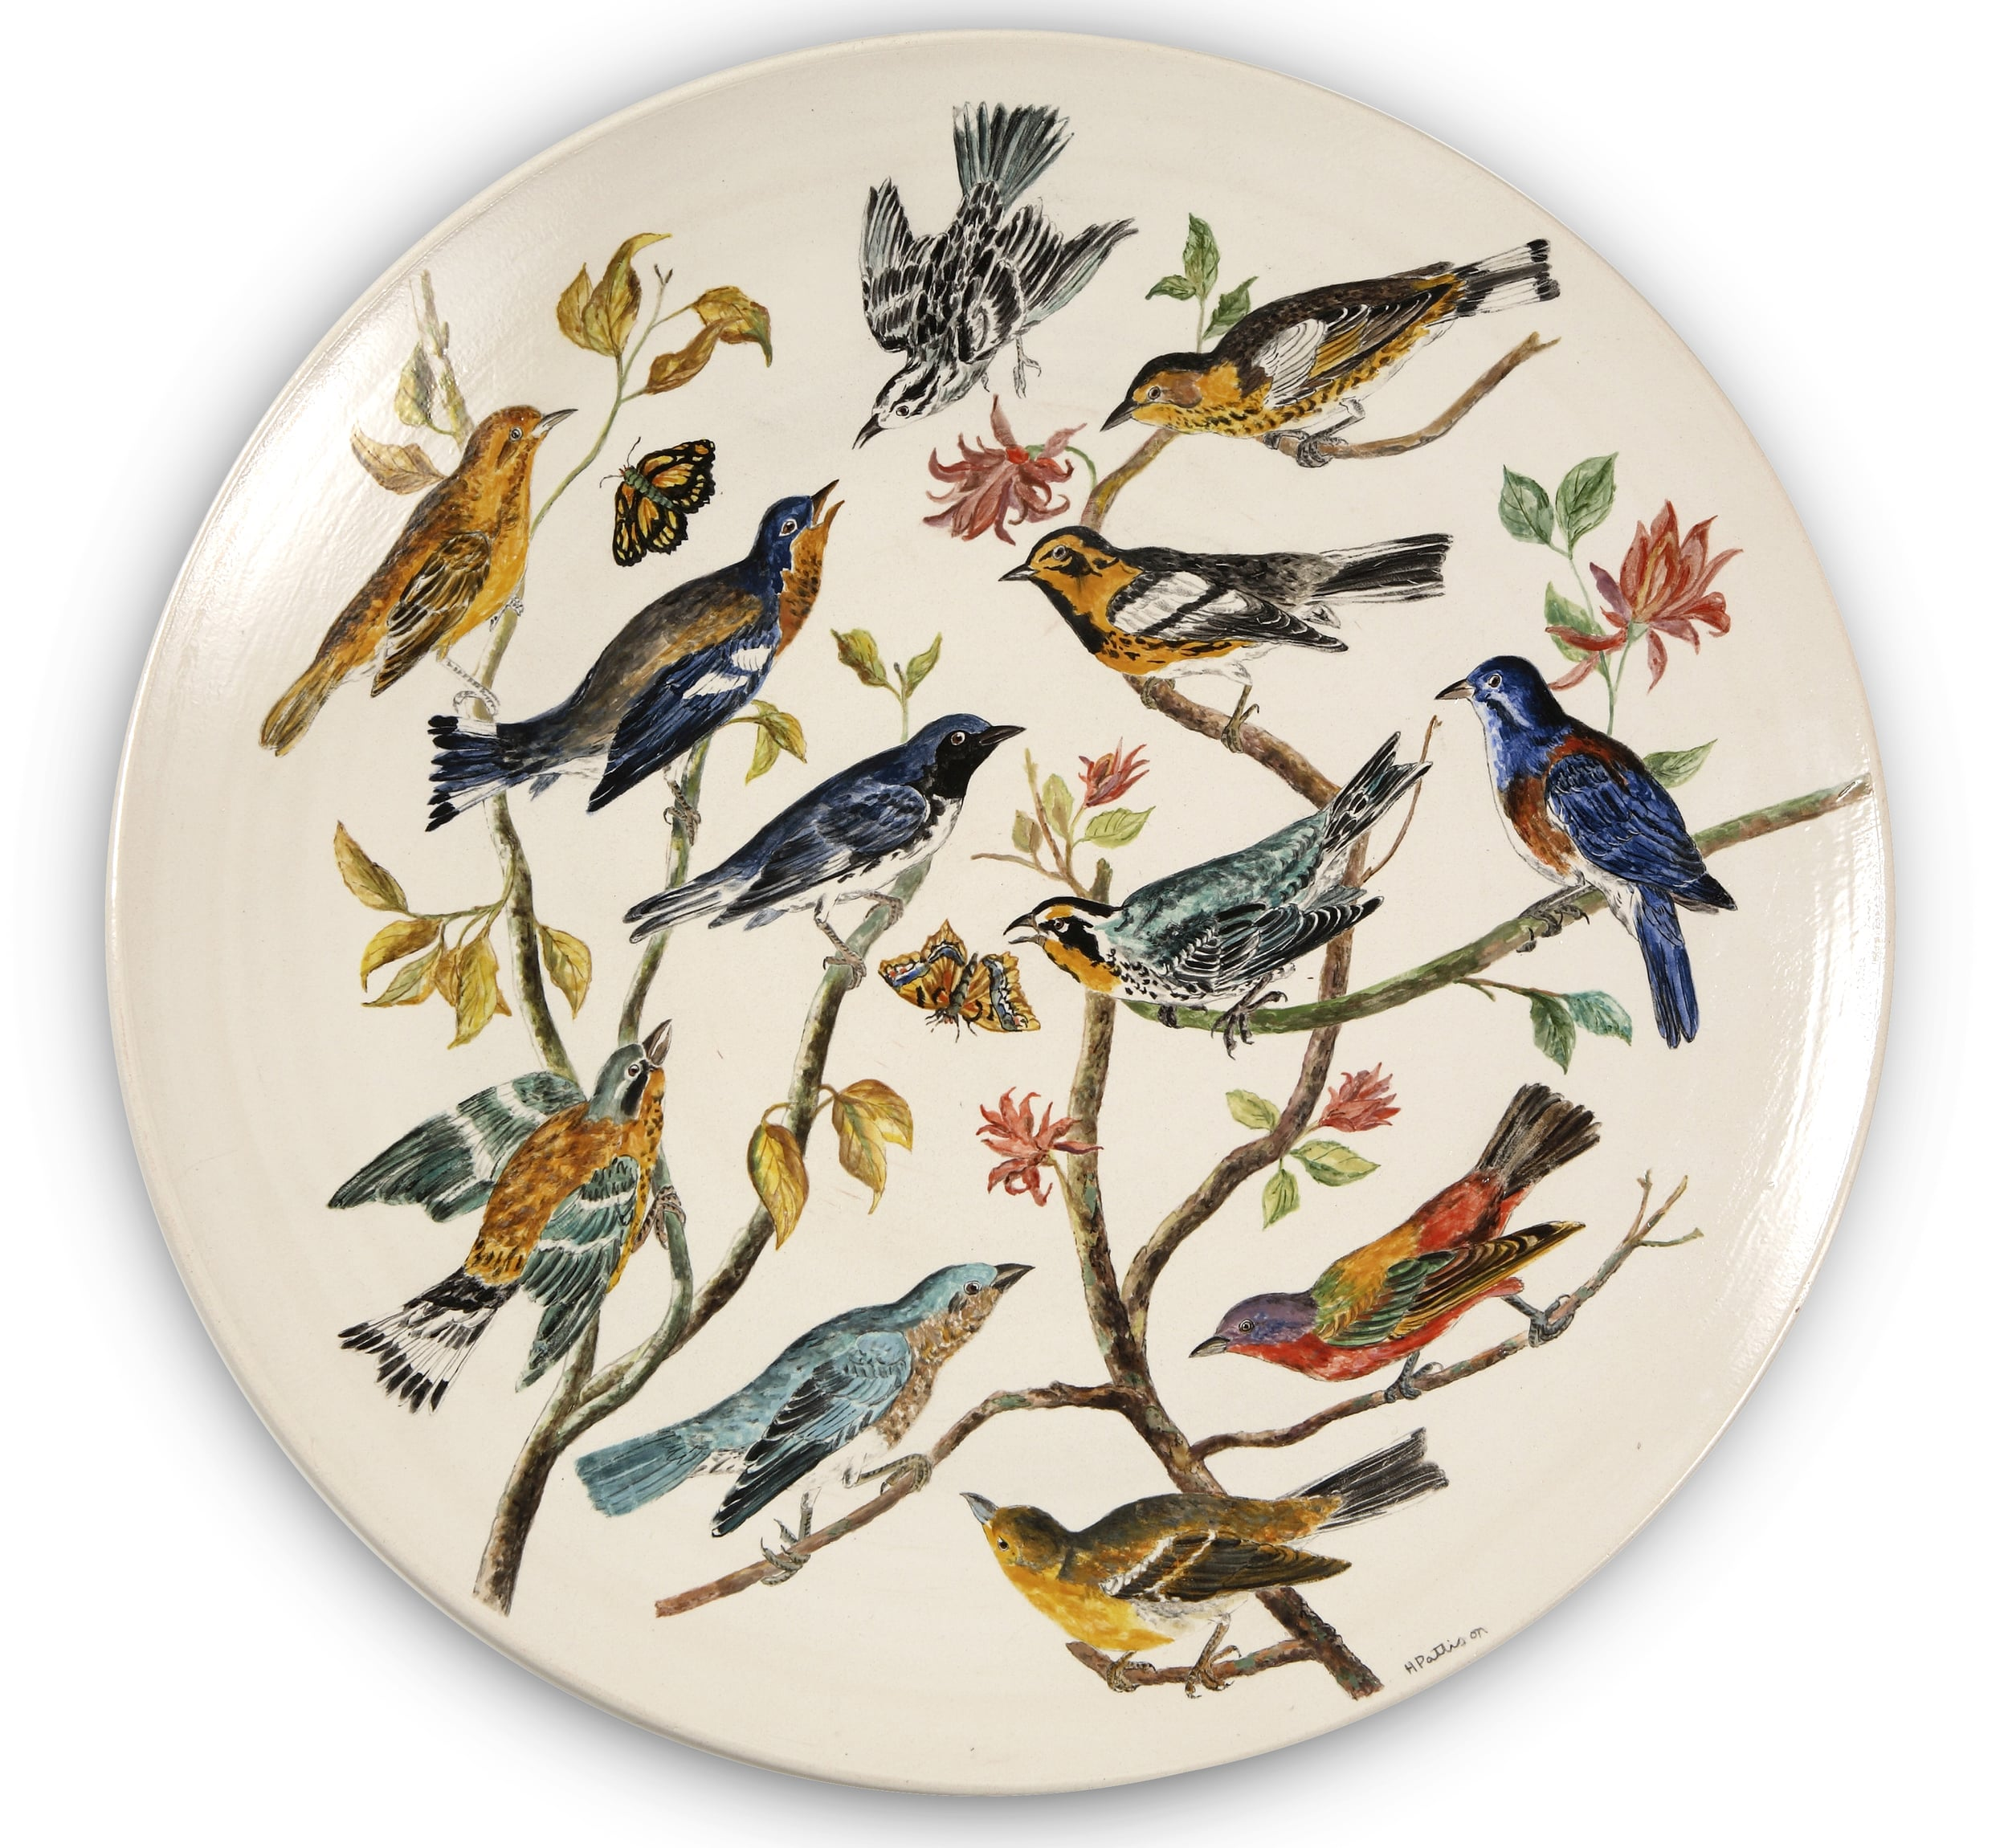 Warblers and Songbirds, glazed porcelain plate, 21 inch diameter